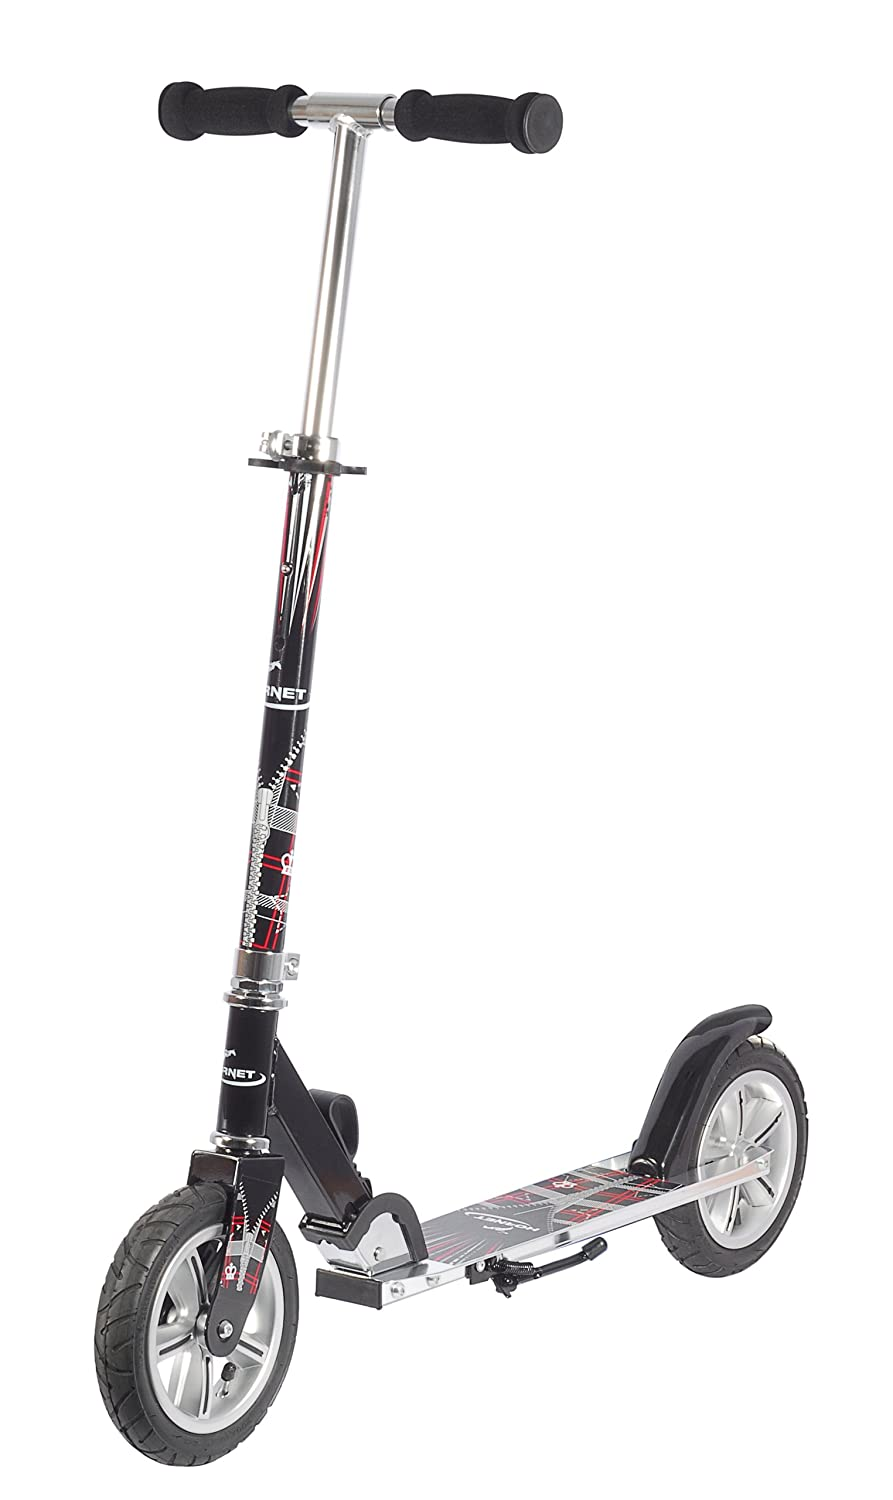 Hudora Hornet Air 205 - Scooters (Kids/Adults, Asphalt, Negro, Plata)